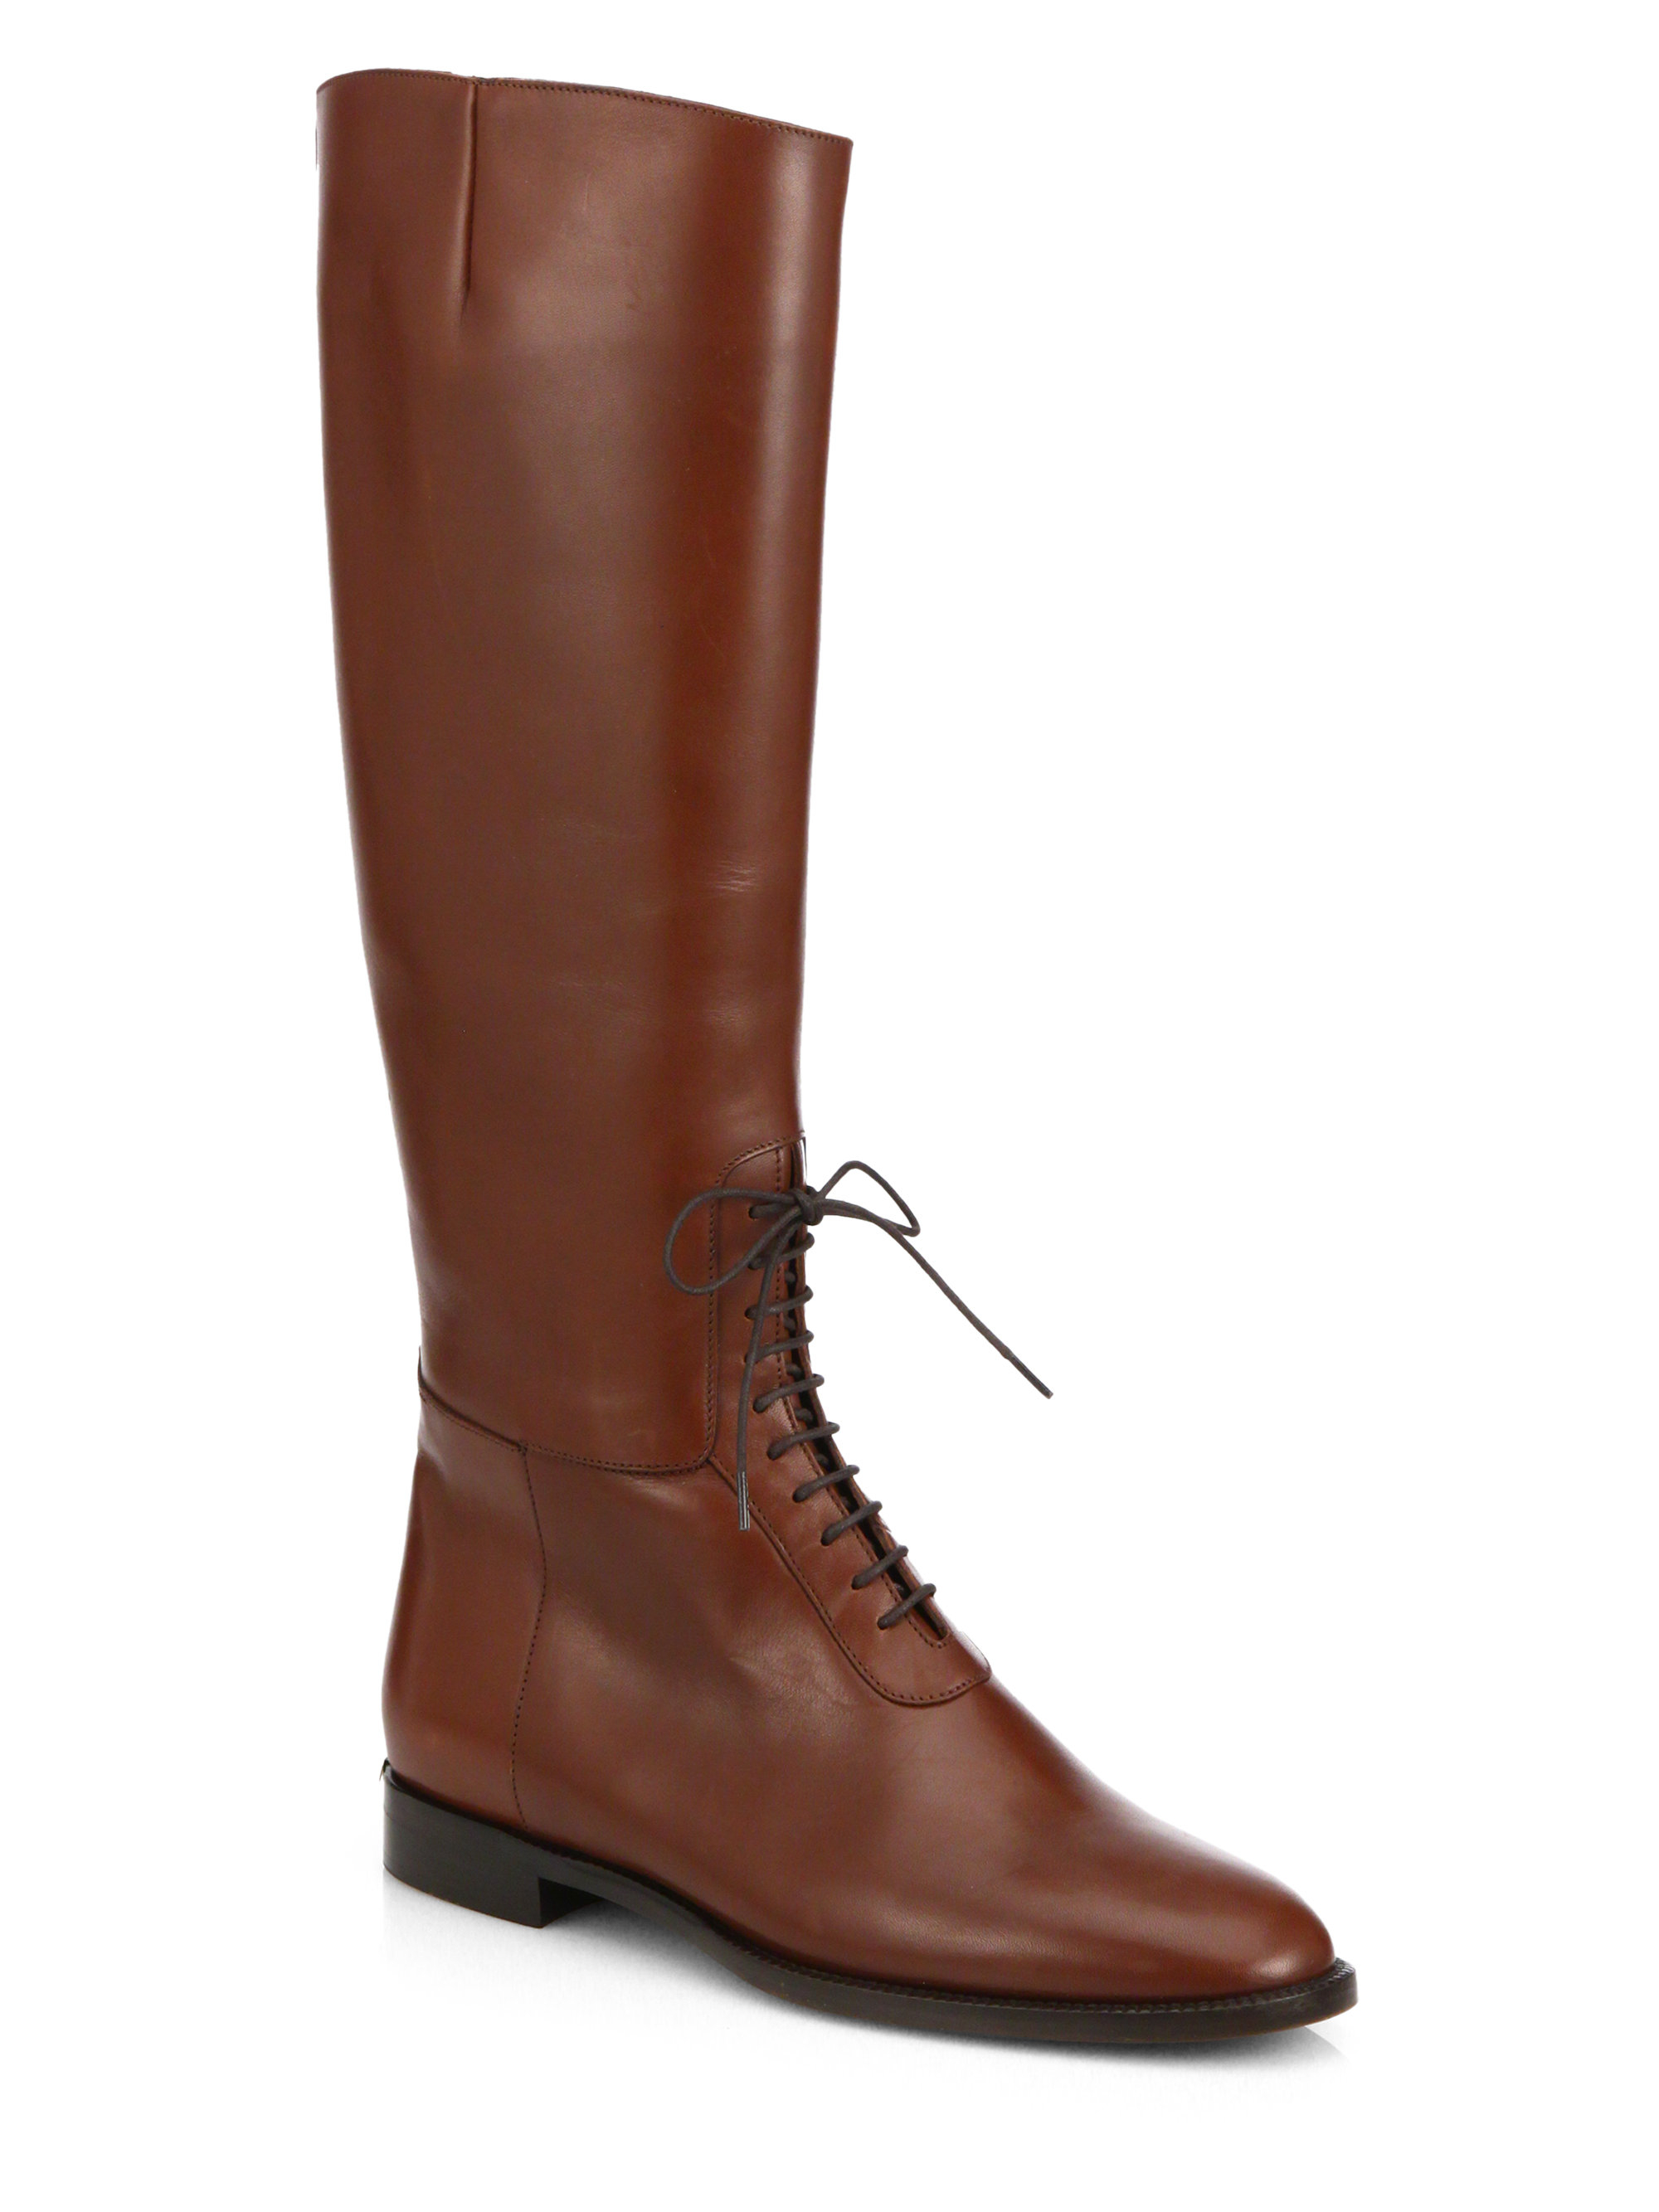 burberry mawgan lace up knee high leather boots in brown